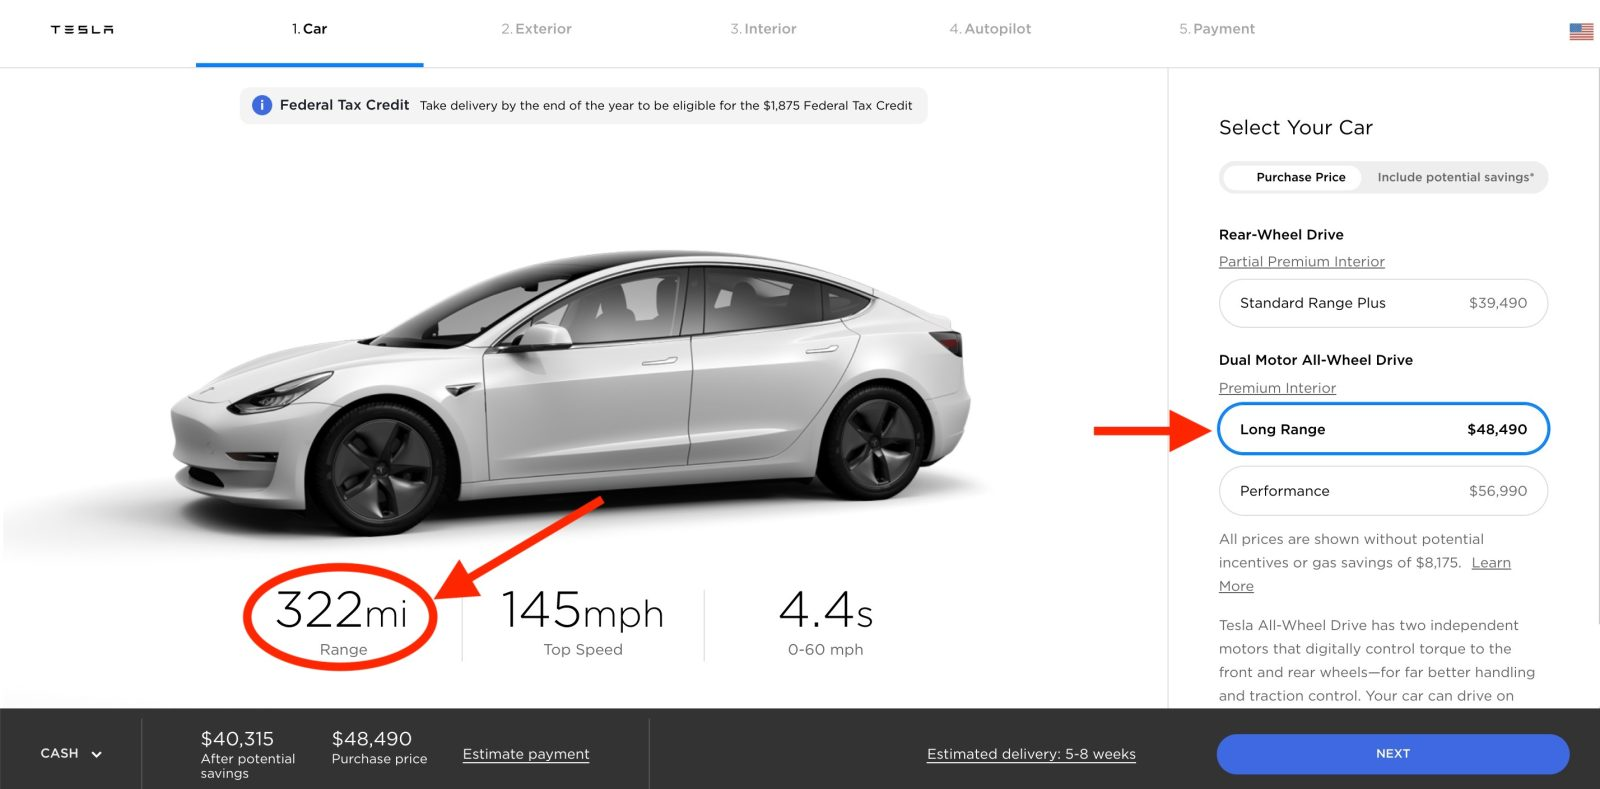 Tesla increases range and price of the Model 3 Long Range